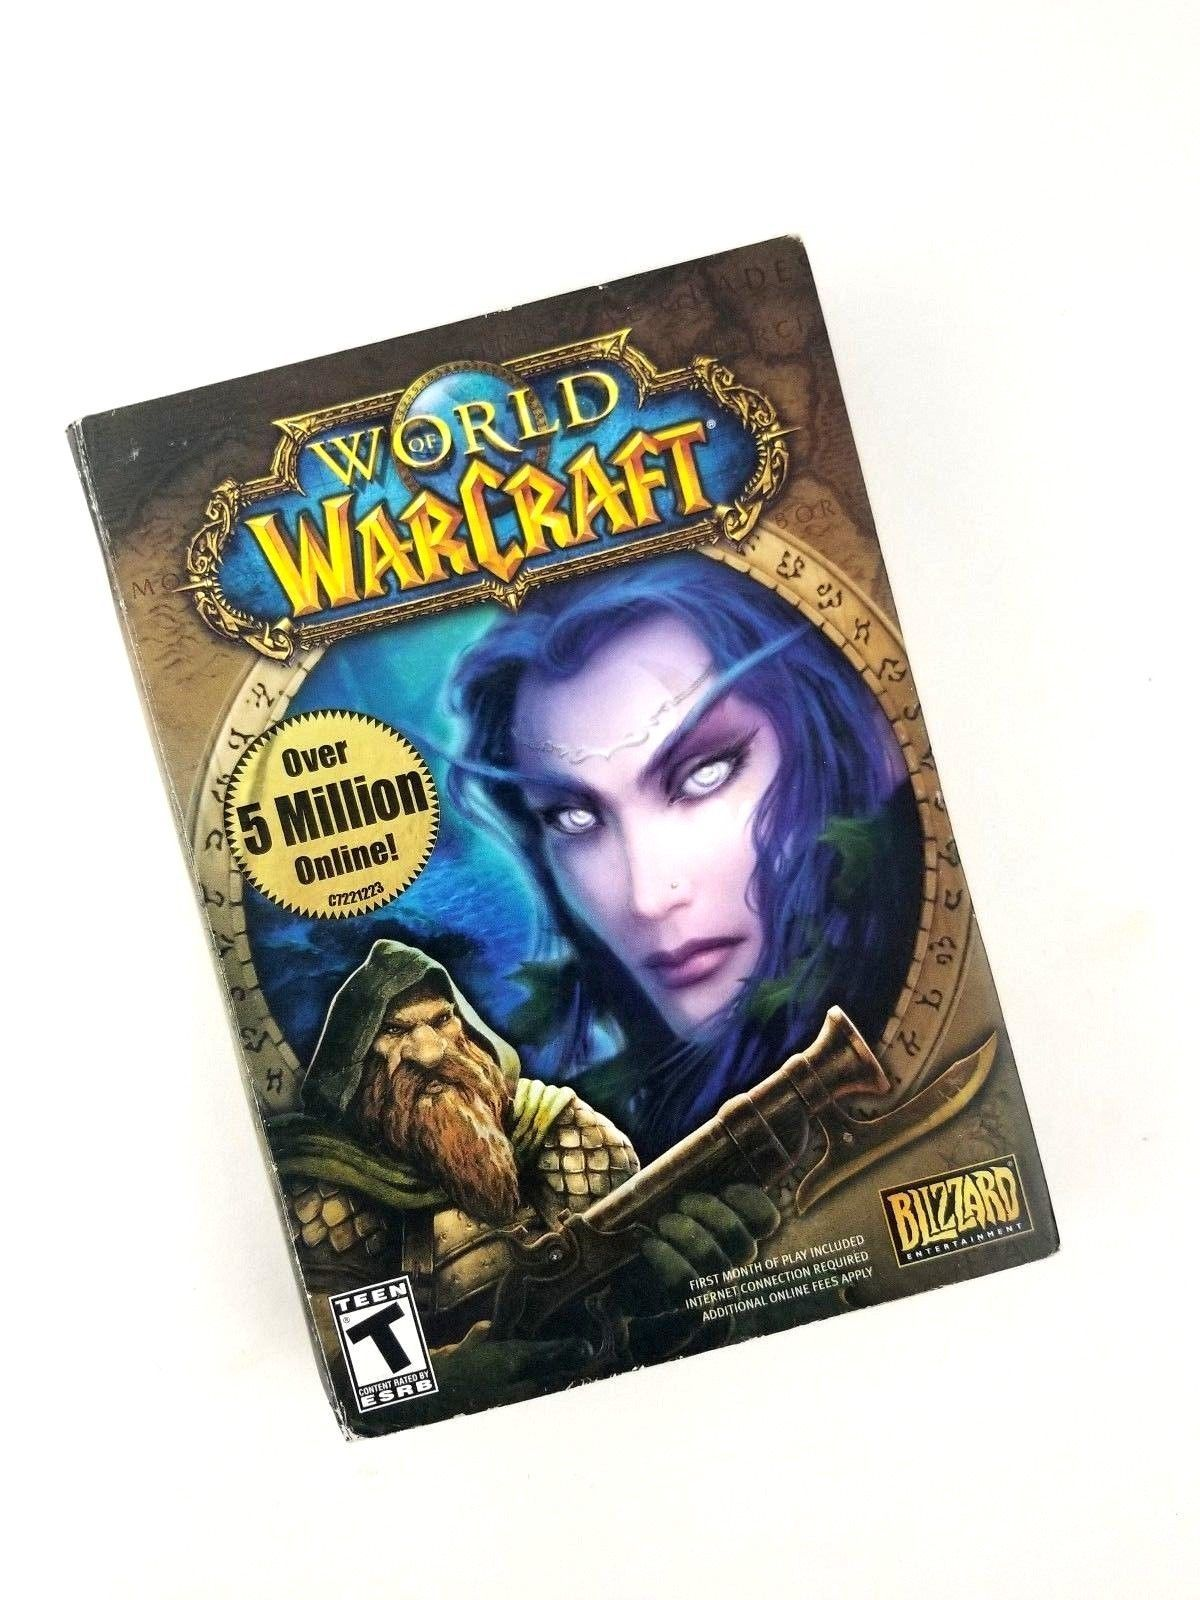 World of Warcraft PC Game for Windows 2000 XP & Mac Blizzard Entertainment New image 5